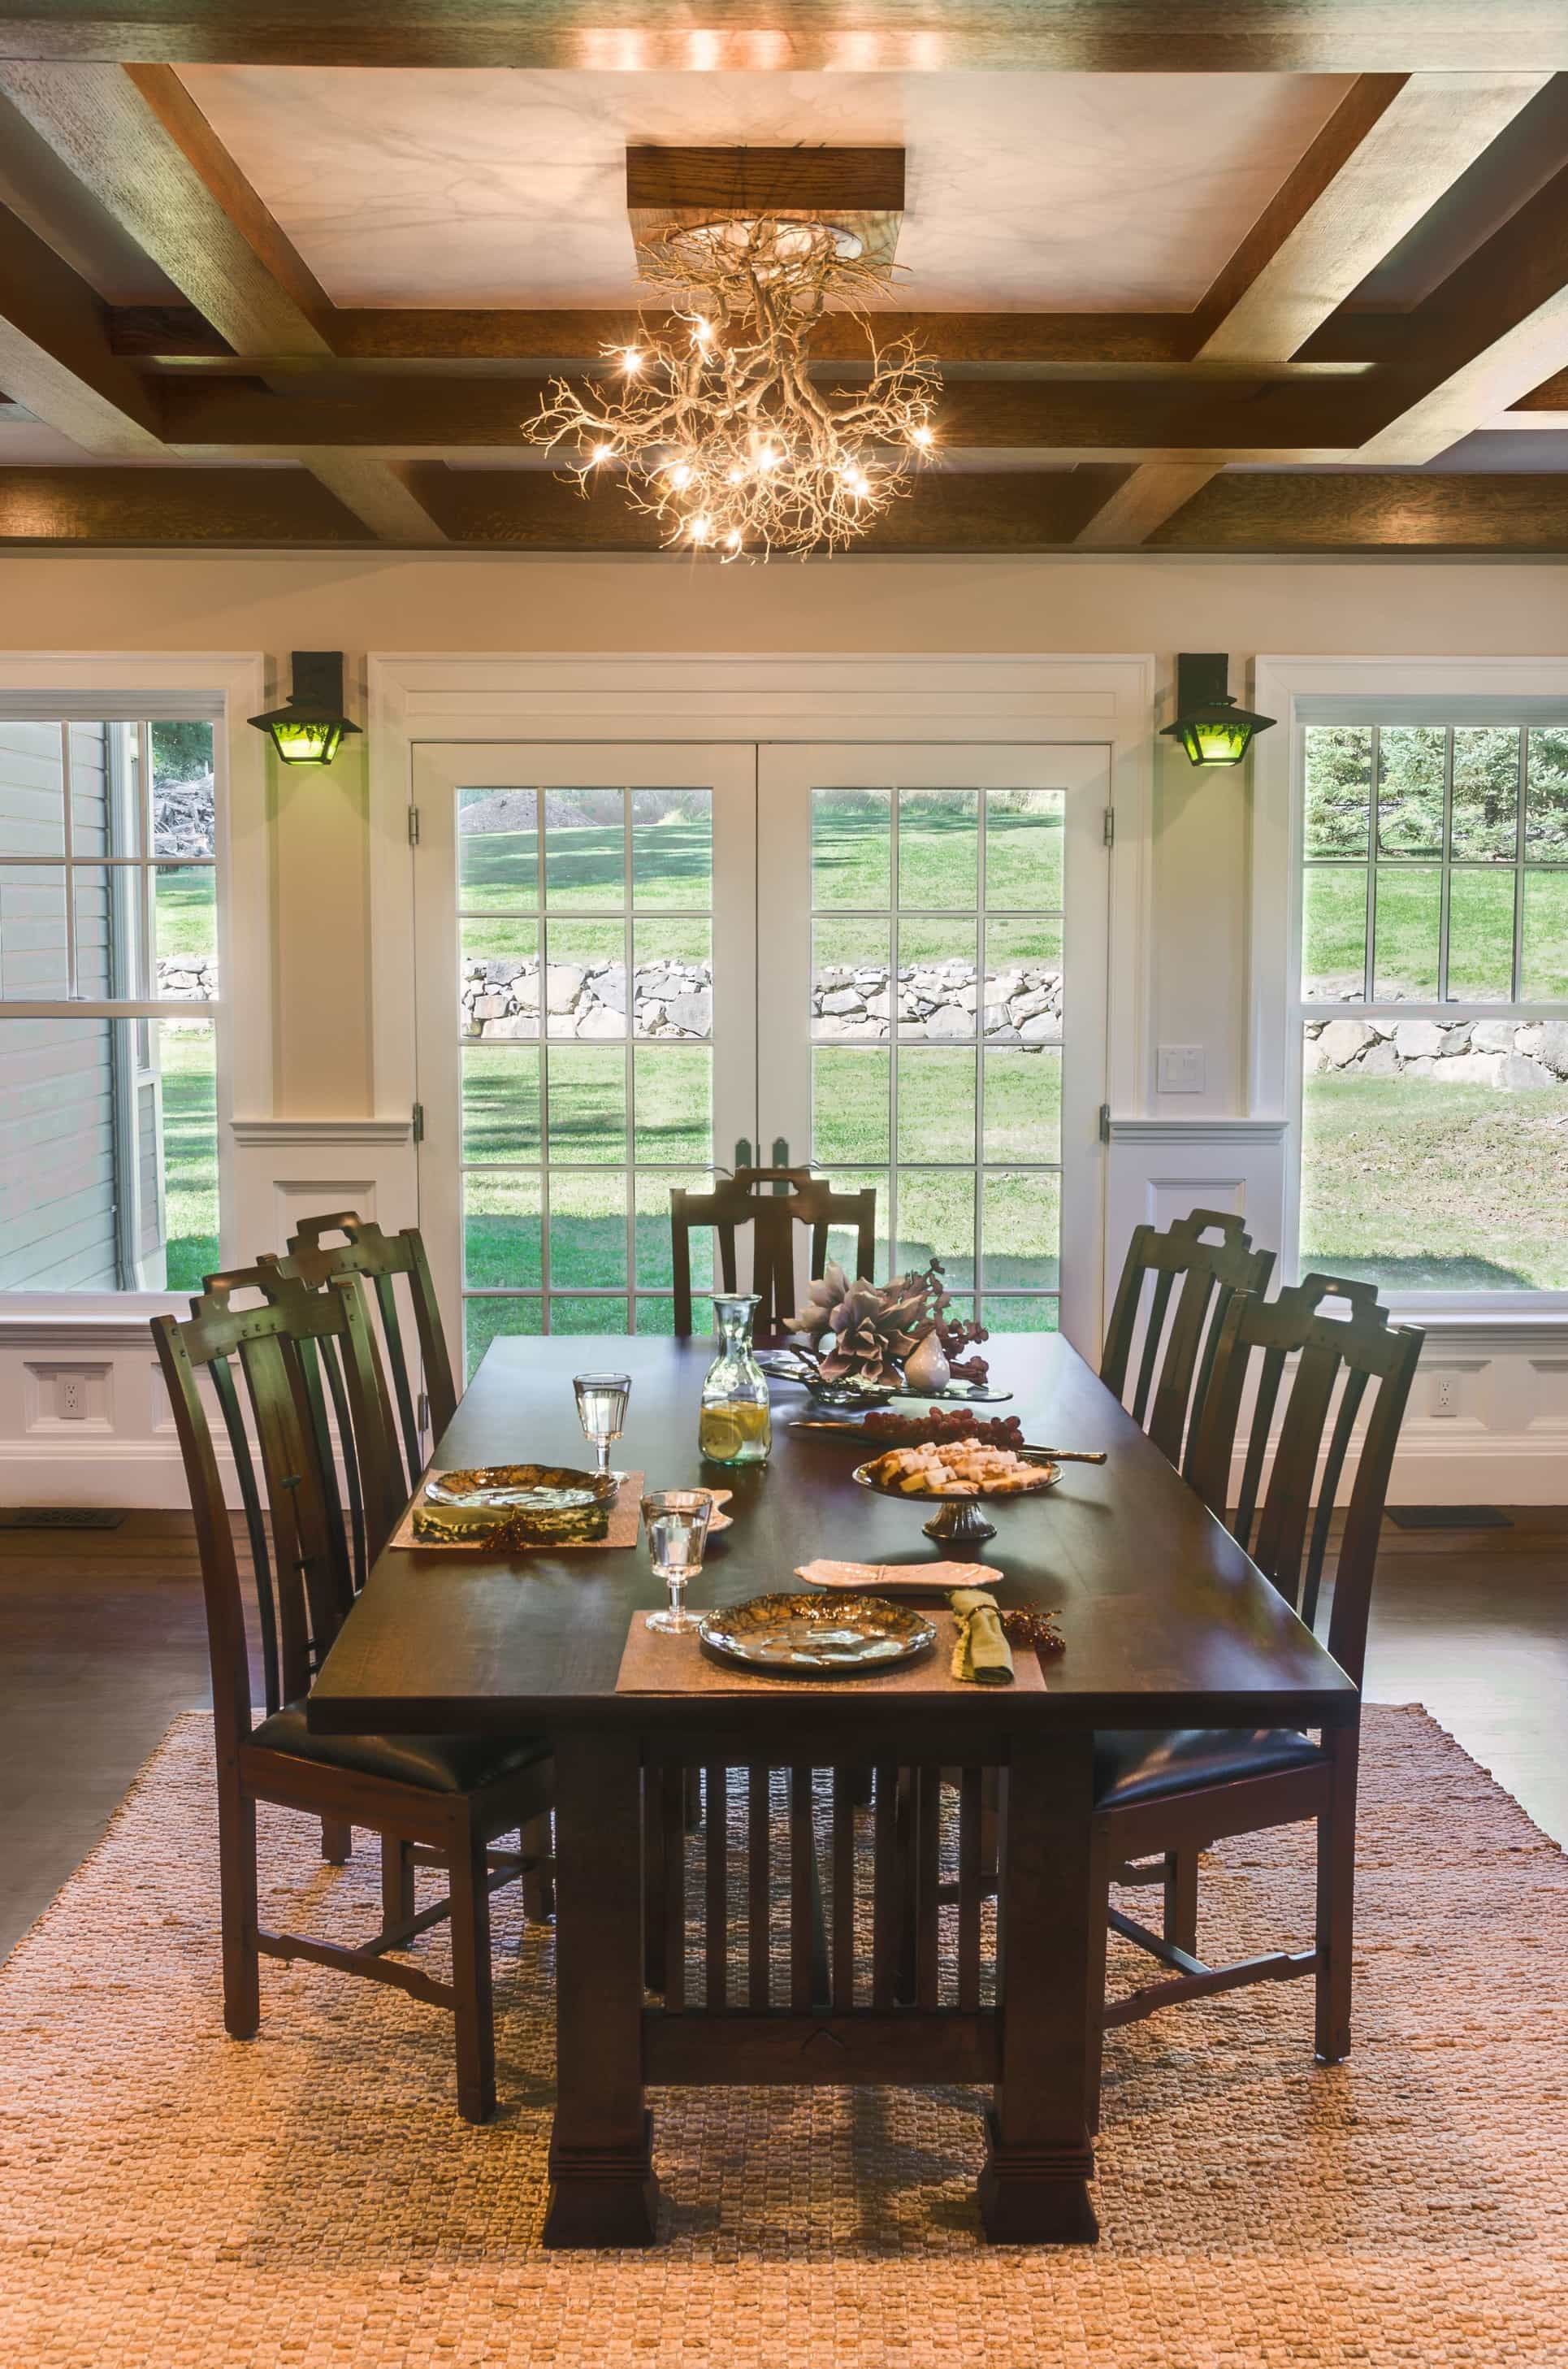 Featured Image of Asian Neutral Dining Room With Craftsman Table And Exposed Beam Ceiling